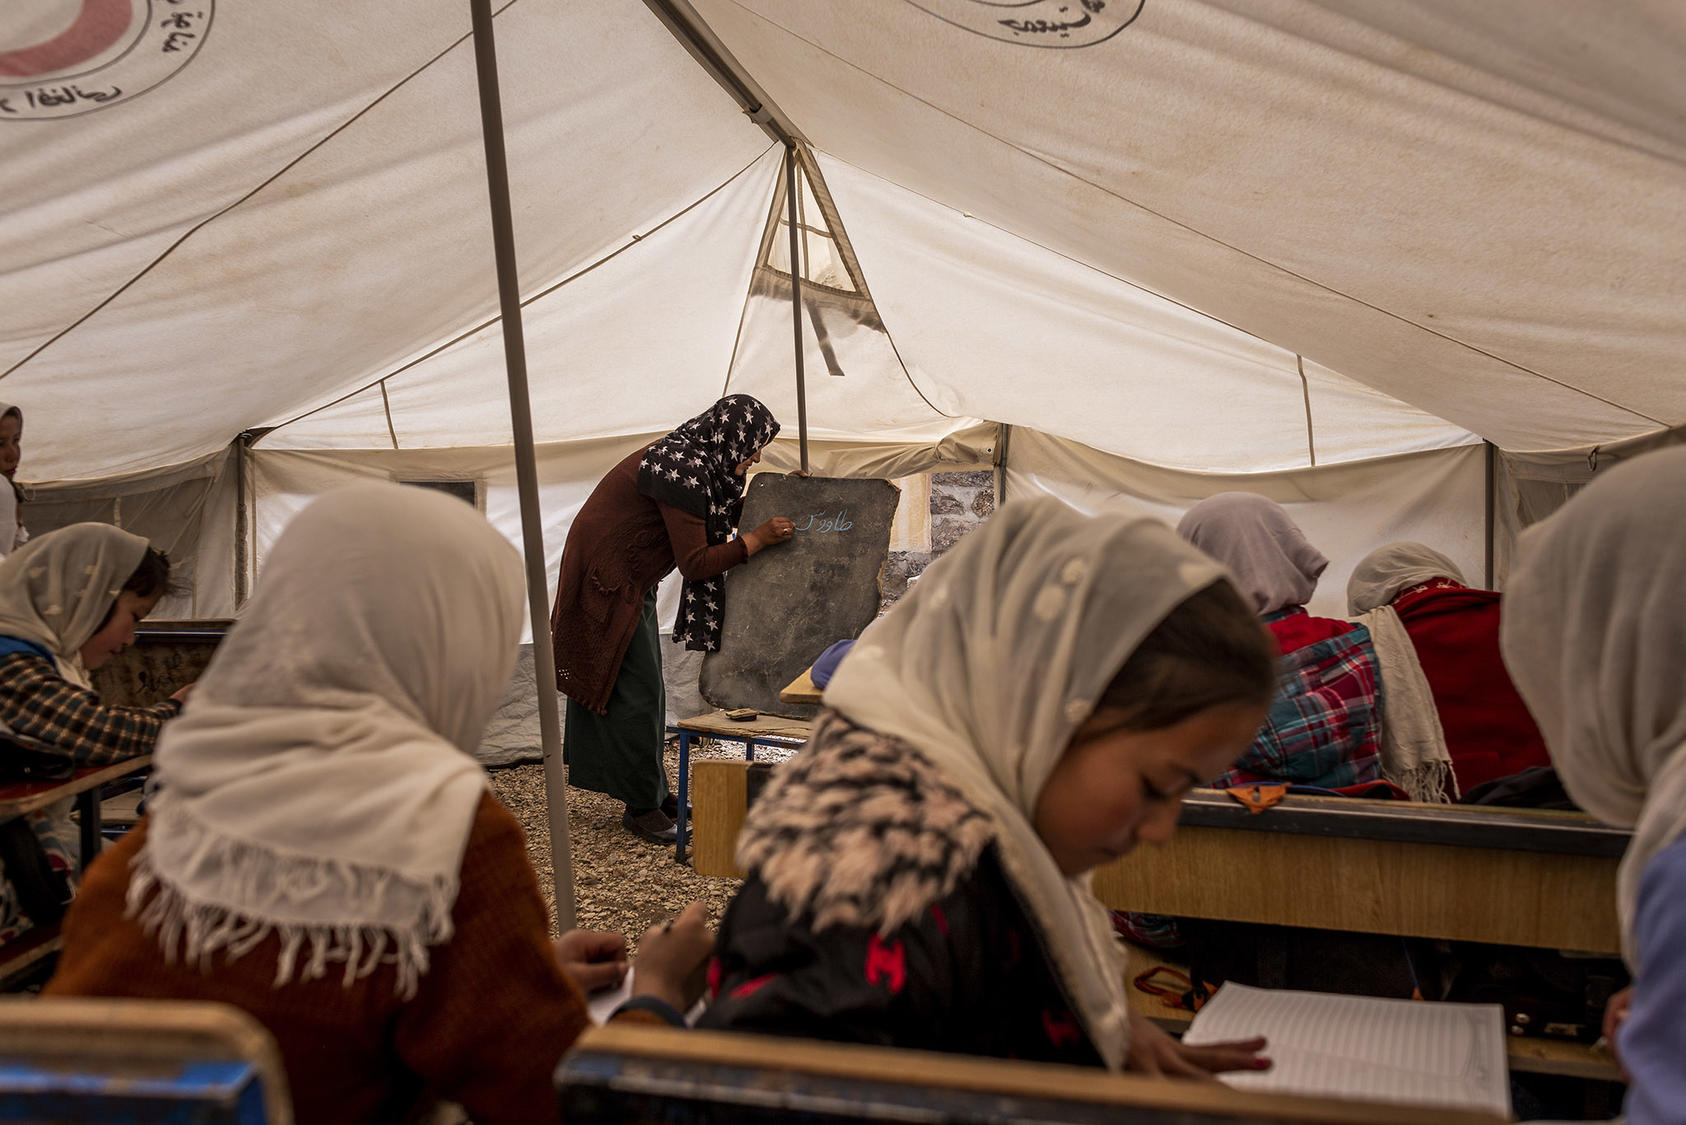 Girls study at a school housed in a tent in central Afghanistan. Afghan women leaders vow to work to preserve education for women and girls in any negotiations with the Taliban over the country's future. (Jim Huylebroek/The New York Times)